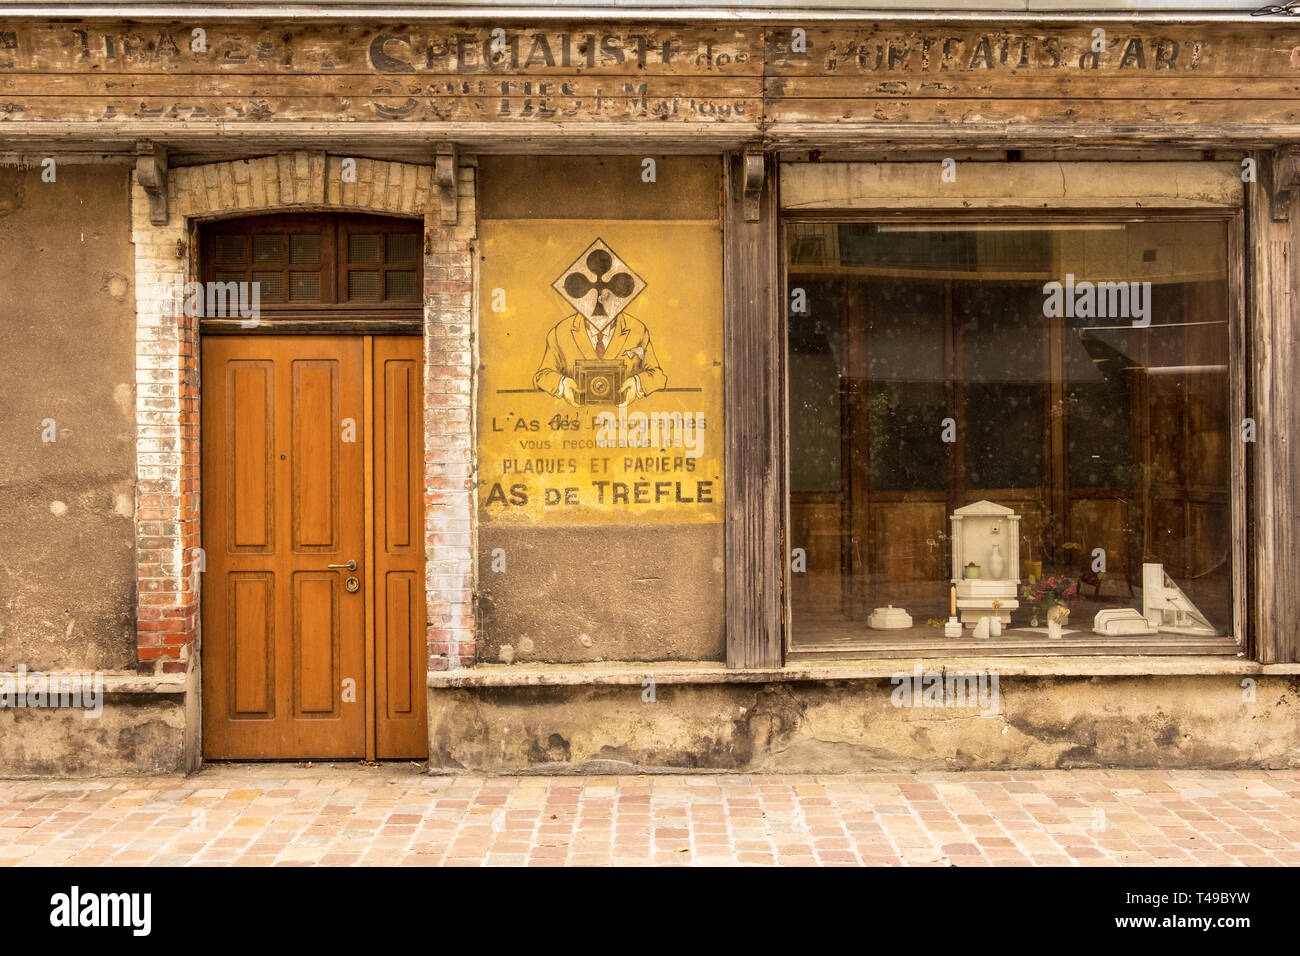 Cherbourg-Octeville, France - August 21, 2018: Old photo studio and photo shop in Cherbourg . Normandy, France - Stock Image